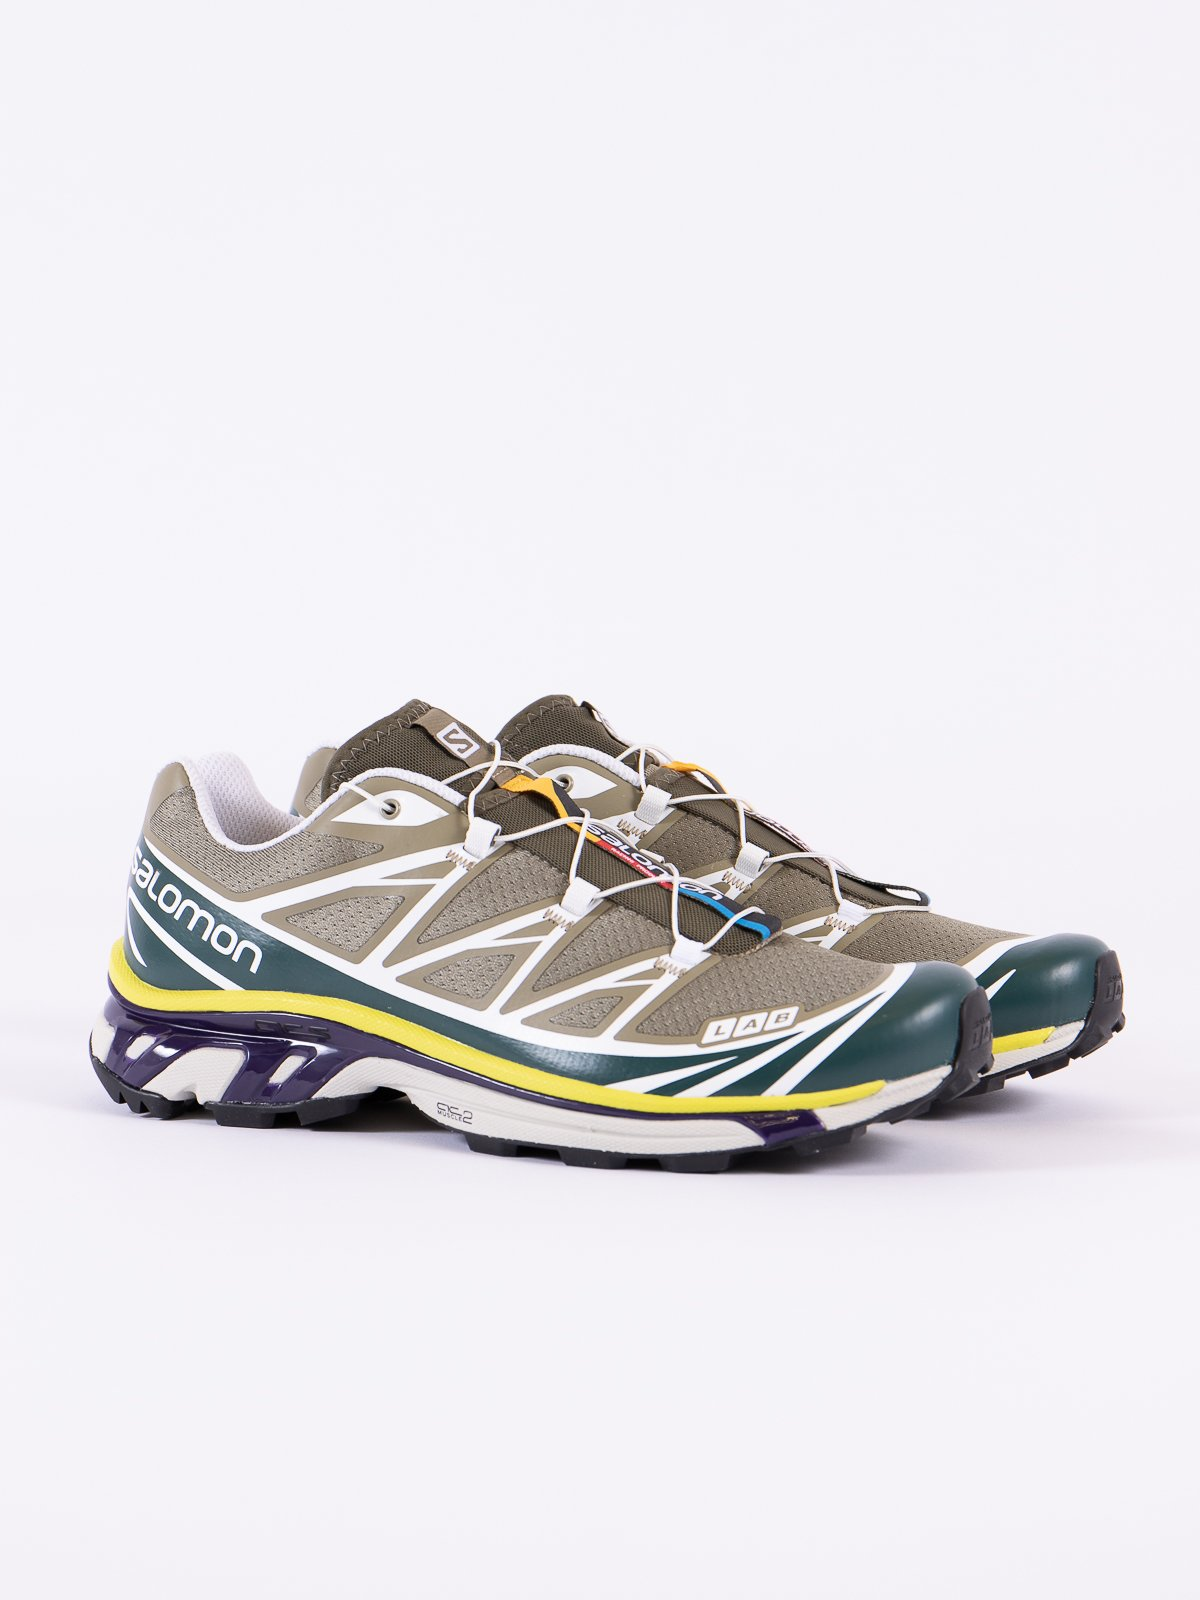 MERMAID/SULPHUR SPRING XT–6 SOFTGROUND LT ADV - Image 1